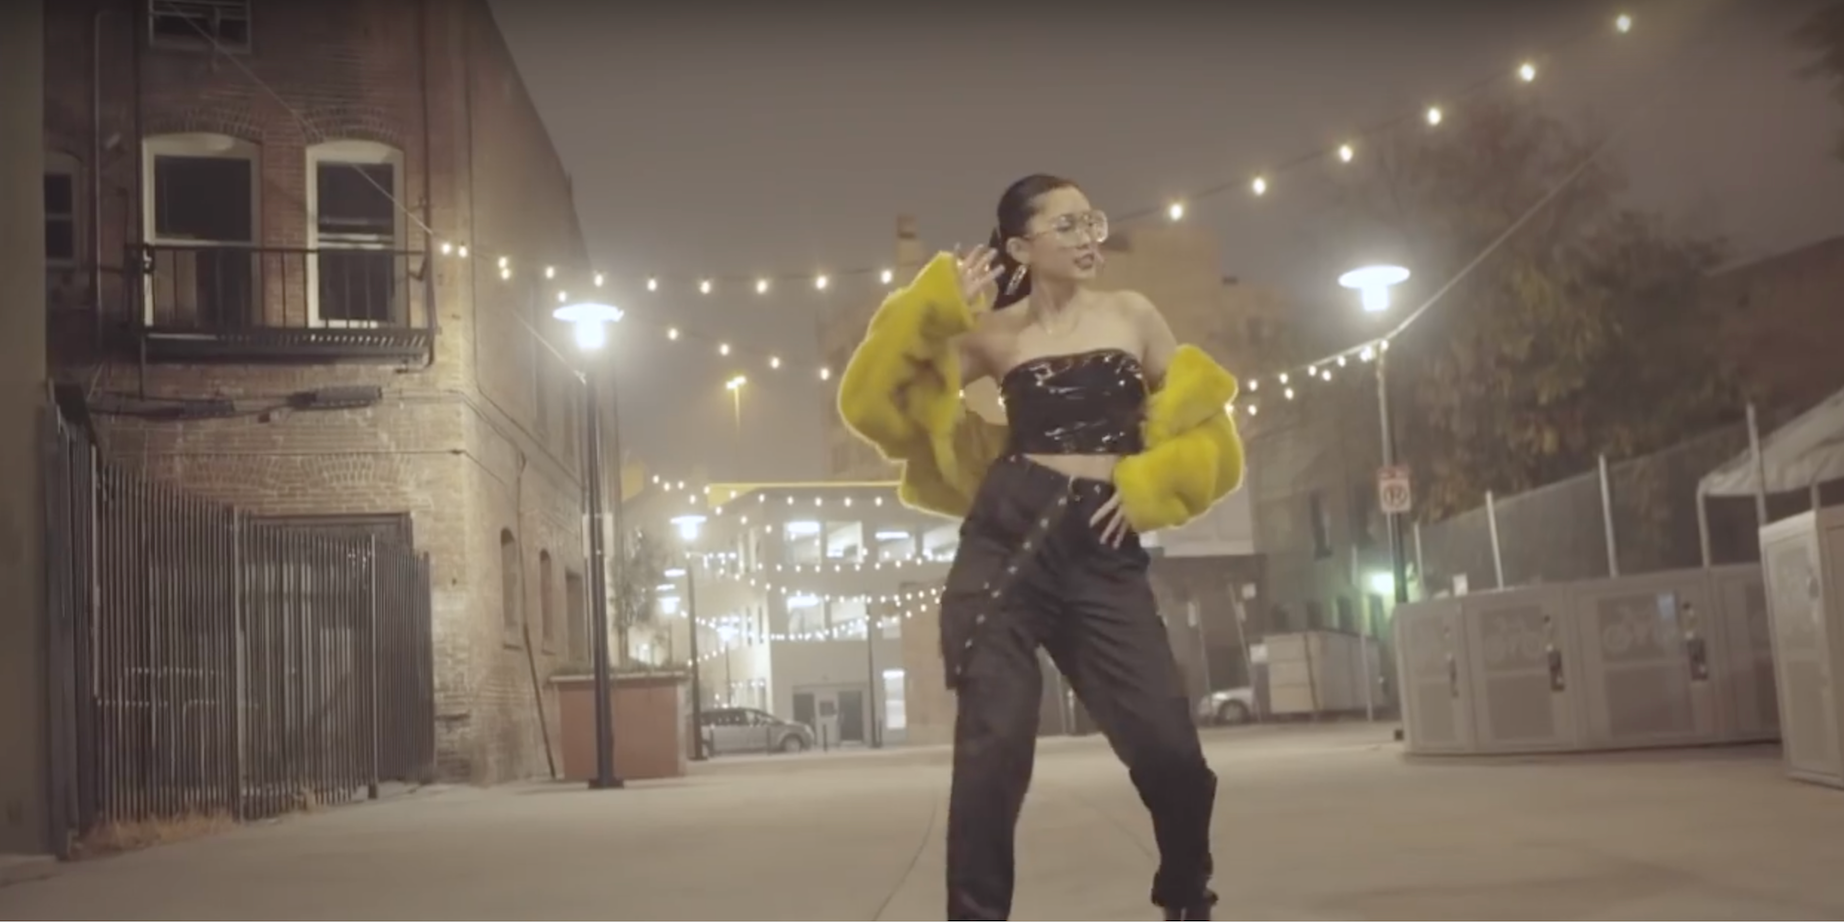 Karencitta's 'Cebuana' takes over Spotify and YouTube